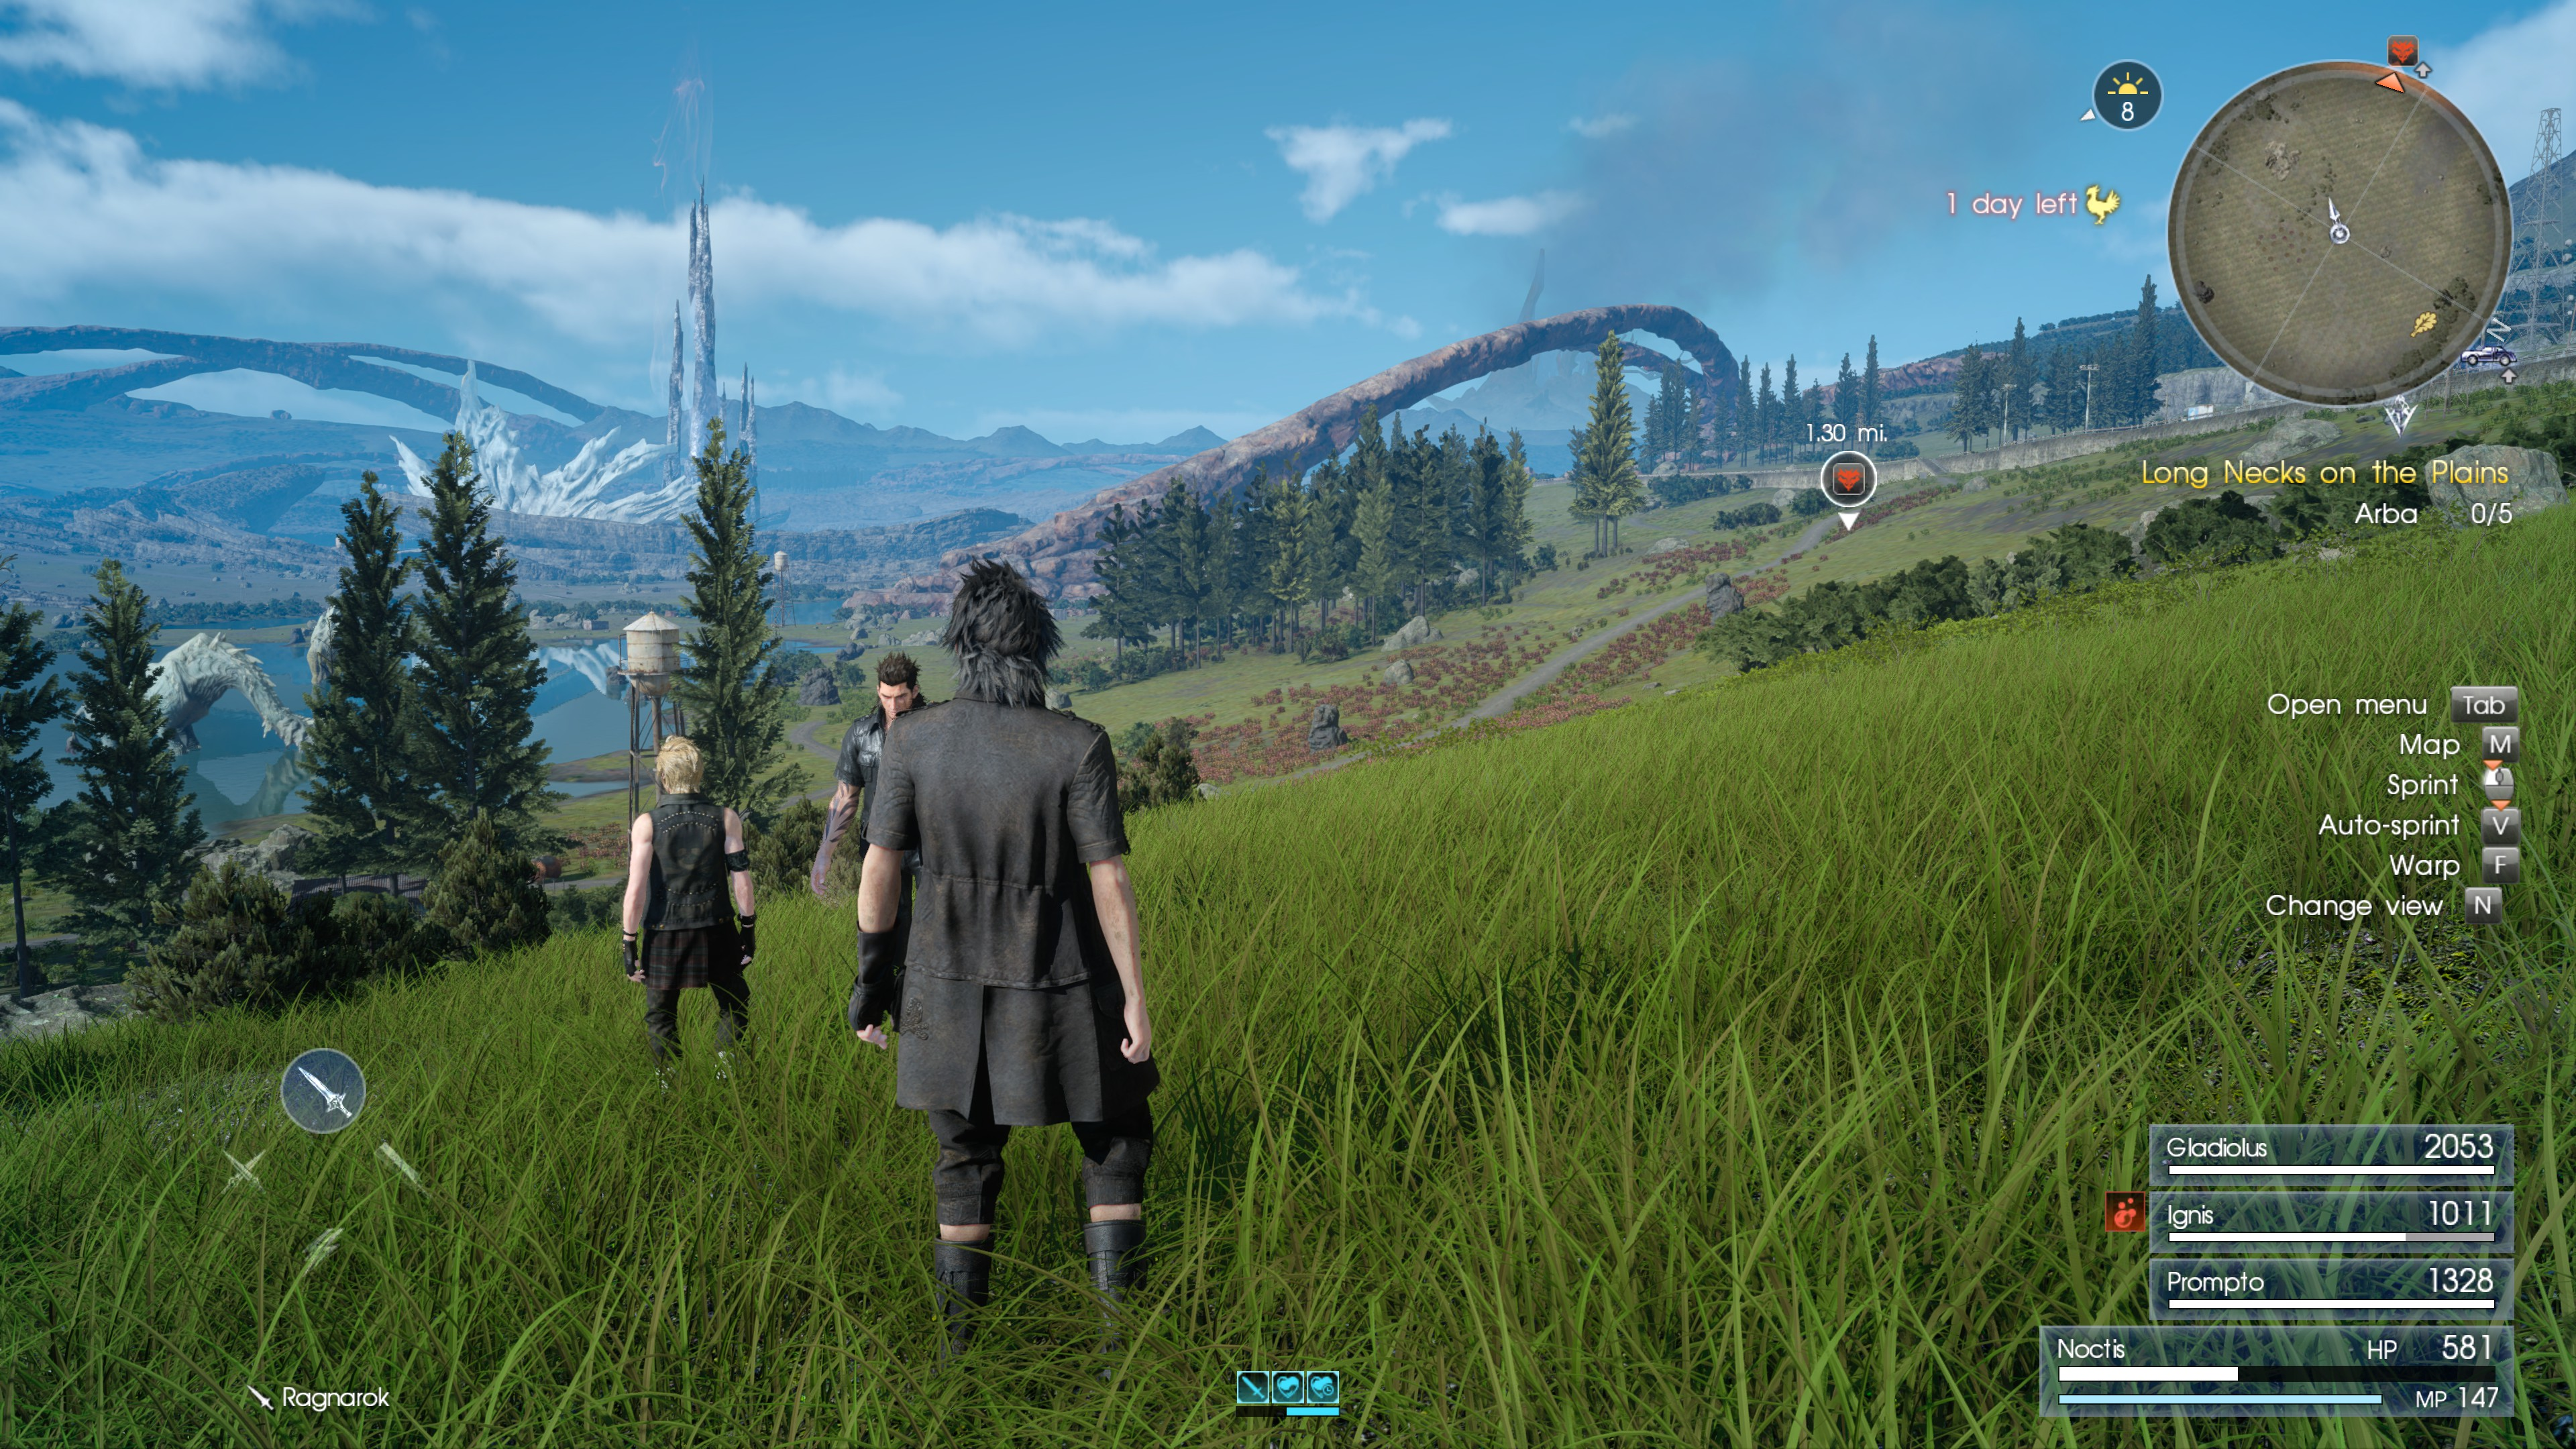 Final Fantasy 15's DLSS tech boosts PC performance by 10-15fps on